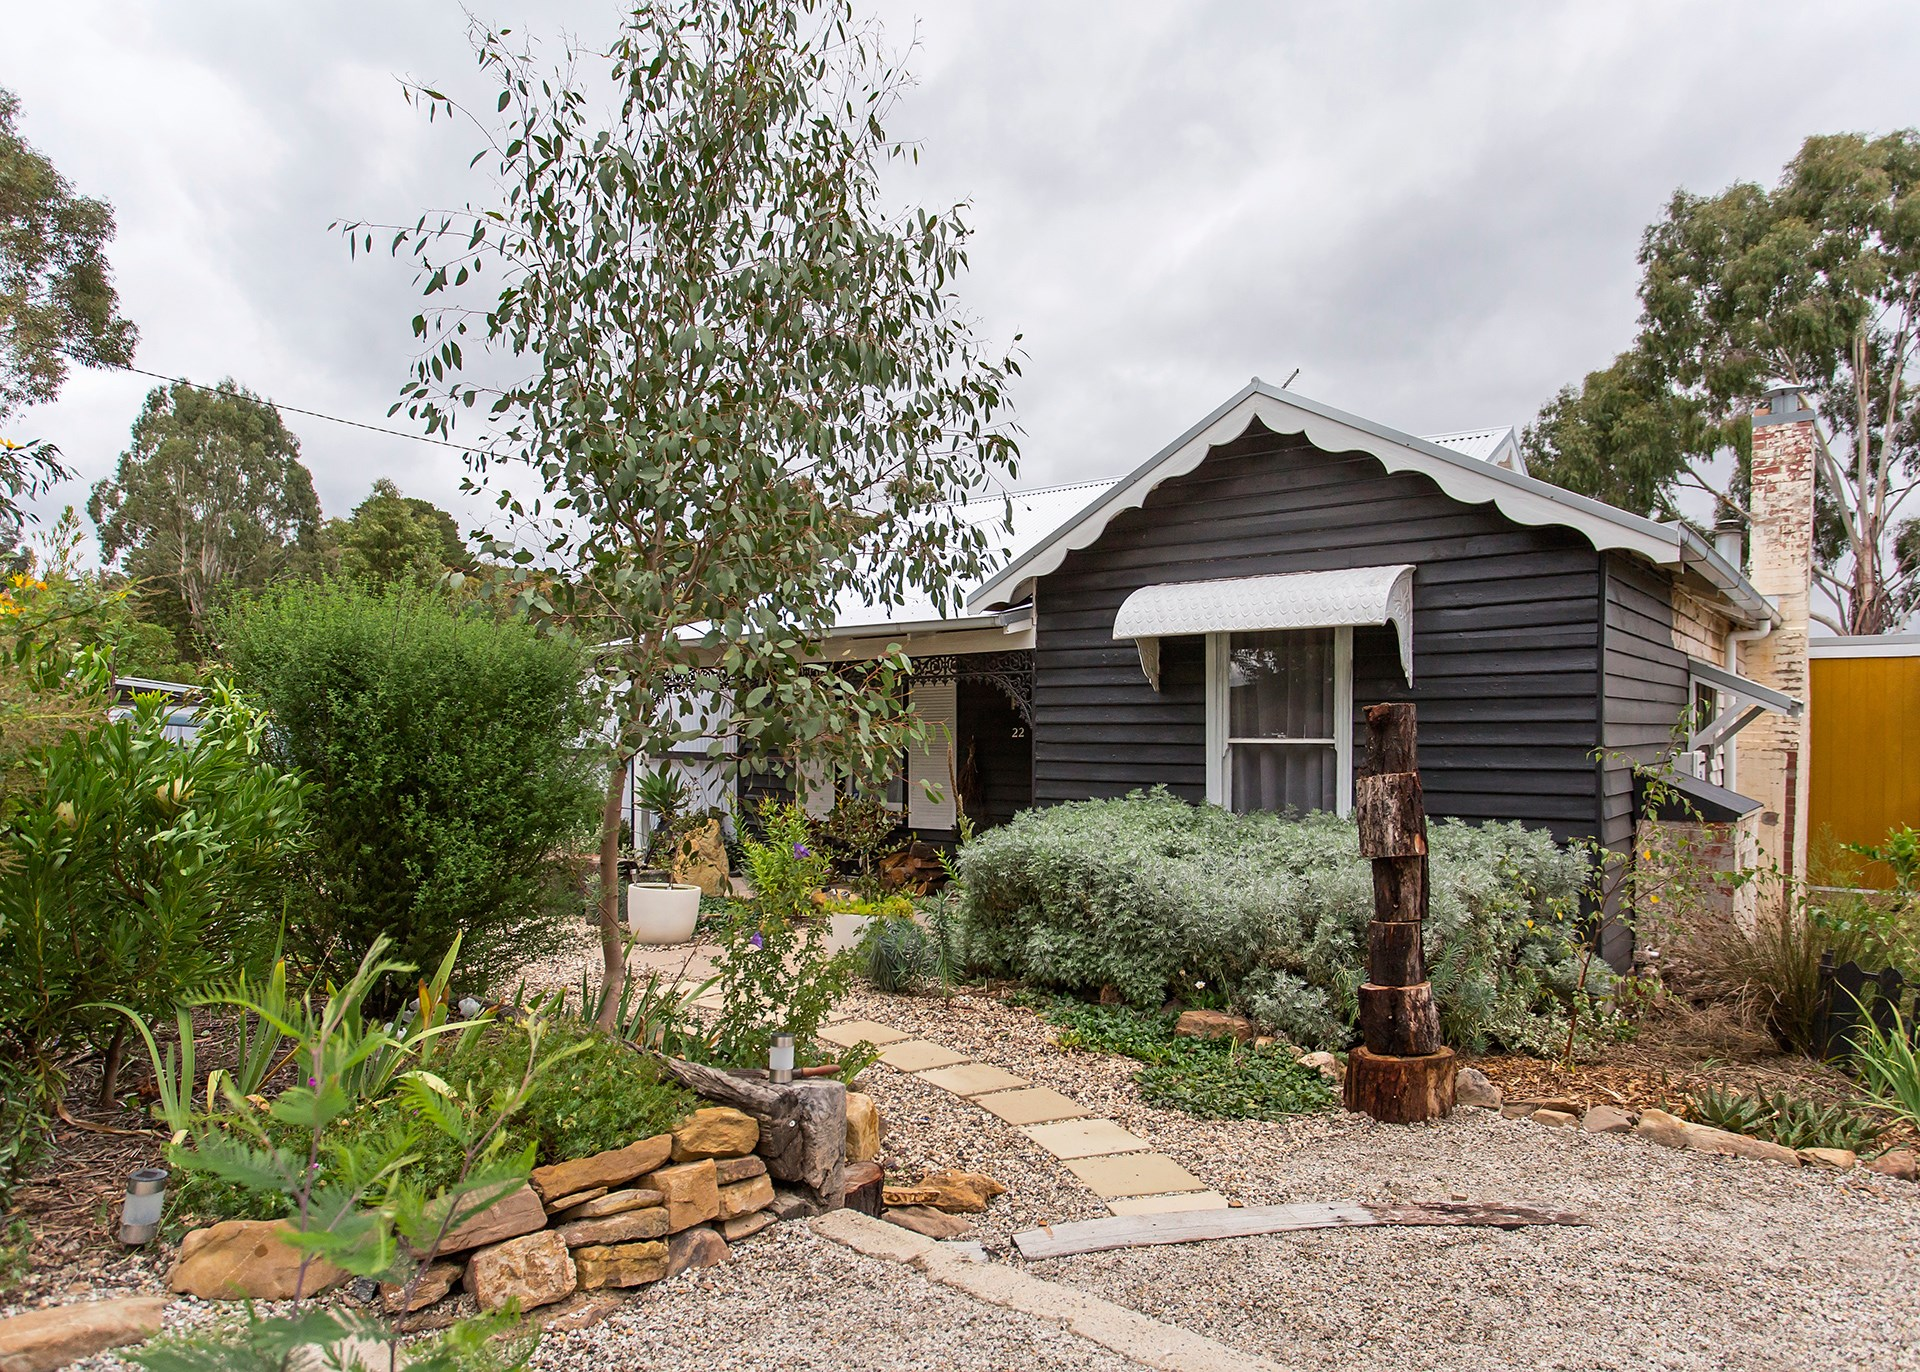 """**Plant a native garden** – native plants are equipped to handle the local conditions and you will rarely need to pamper them. [Take a tour of this 100-year-old Victorian home](http://www.homestolove.com.au/old-victorian-home-gets-budget-renovation-3769